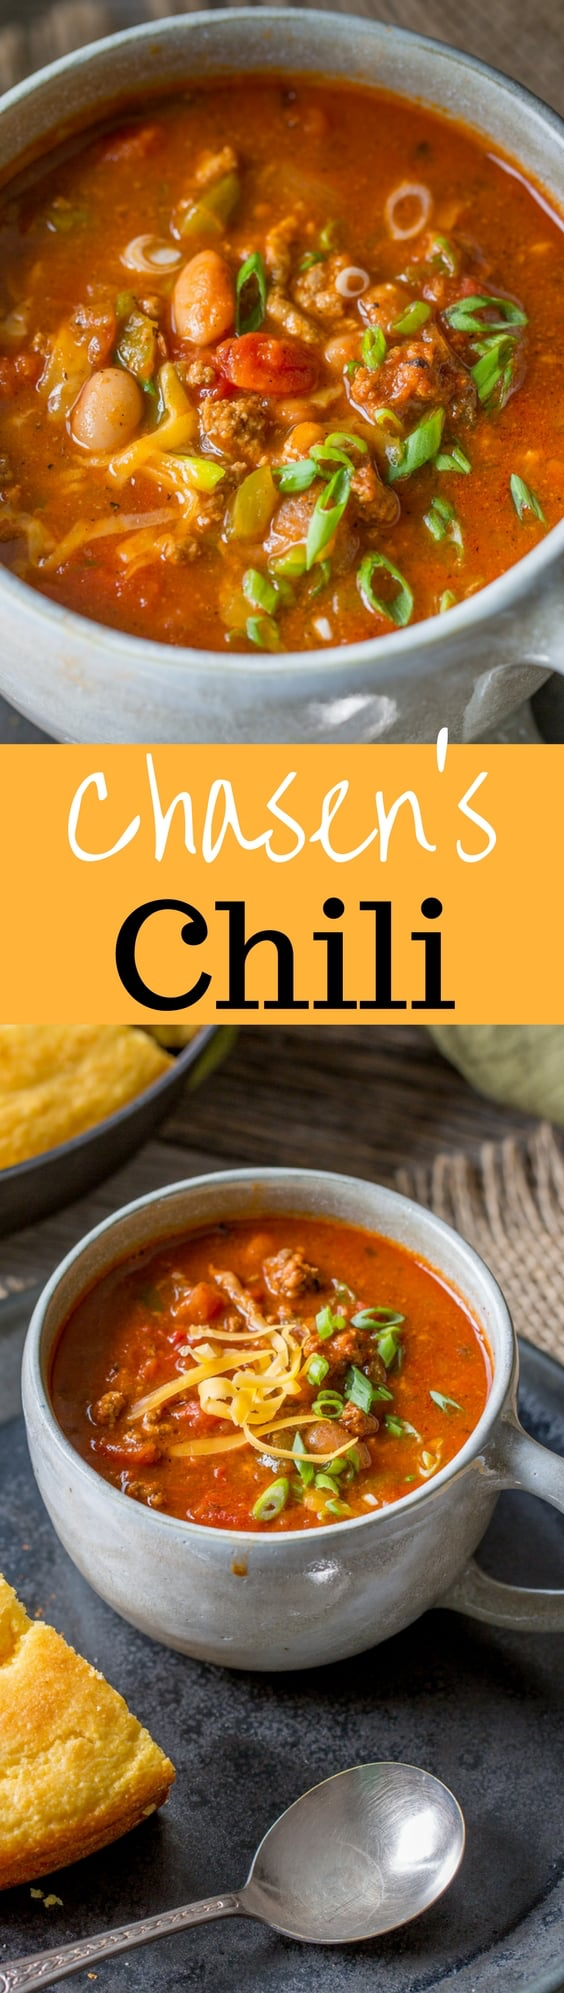 Chasen's Chili - adapted from the famous Chasen's Hollywood restaurant recipe which was a favorite with actors including Elizabeth Taylor and Richard Burton   www.savingdessert.com